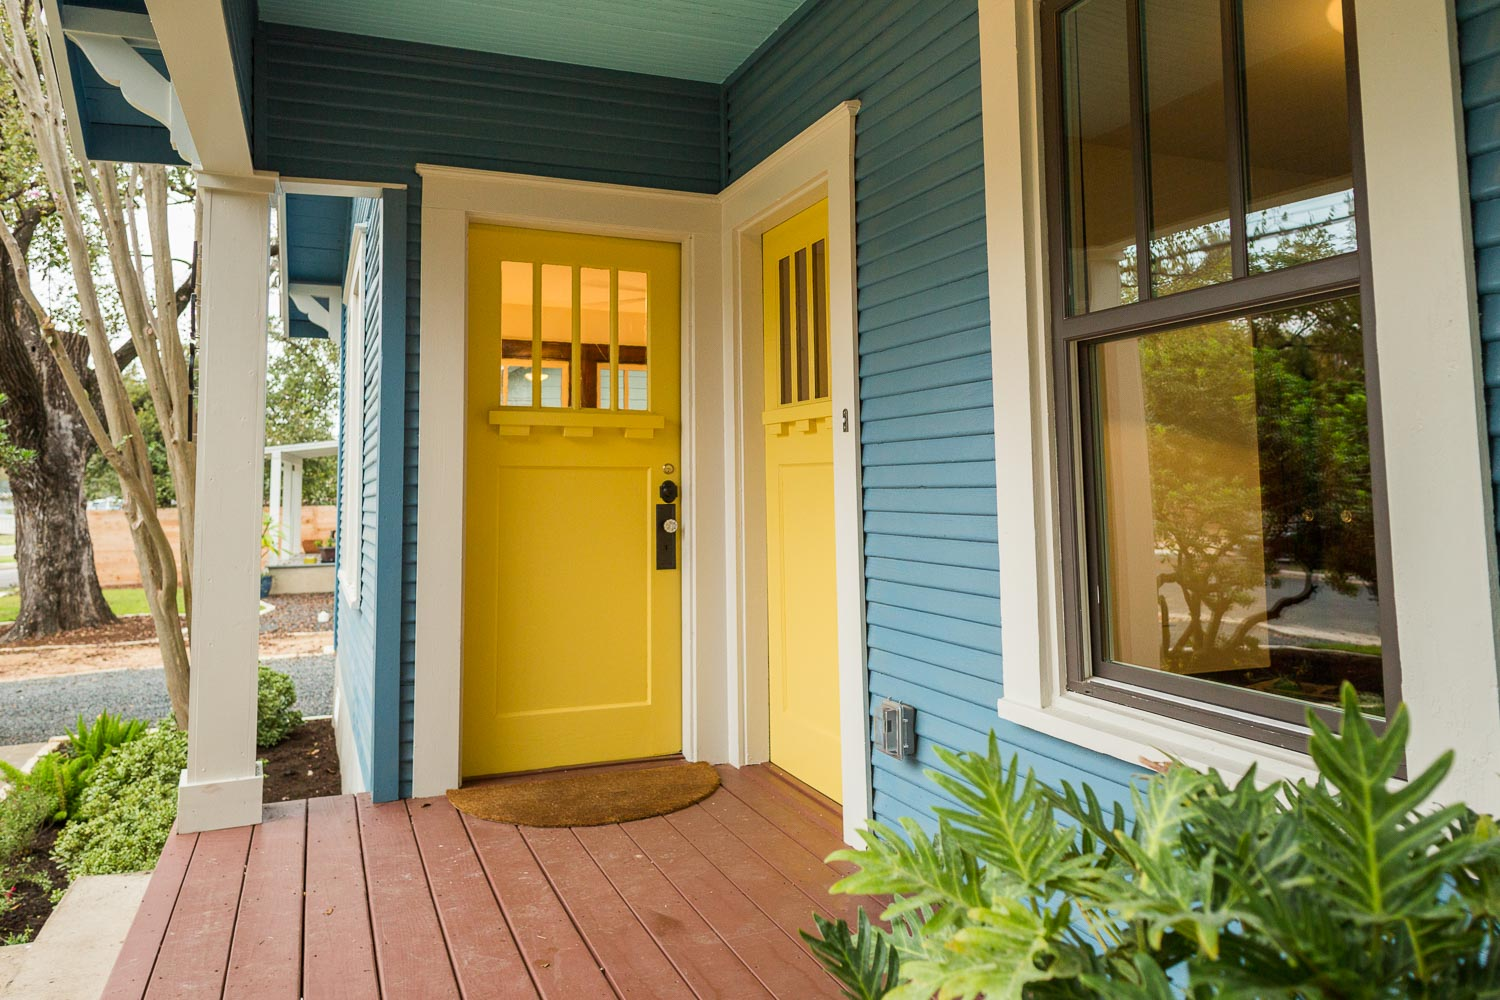 One last picture of the happy front porch!